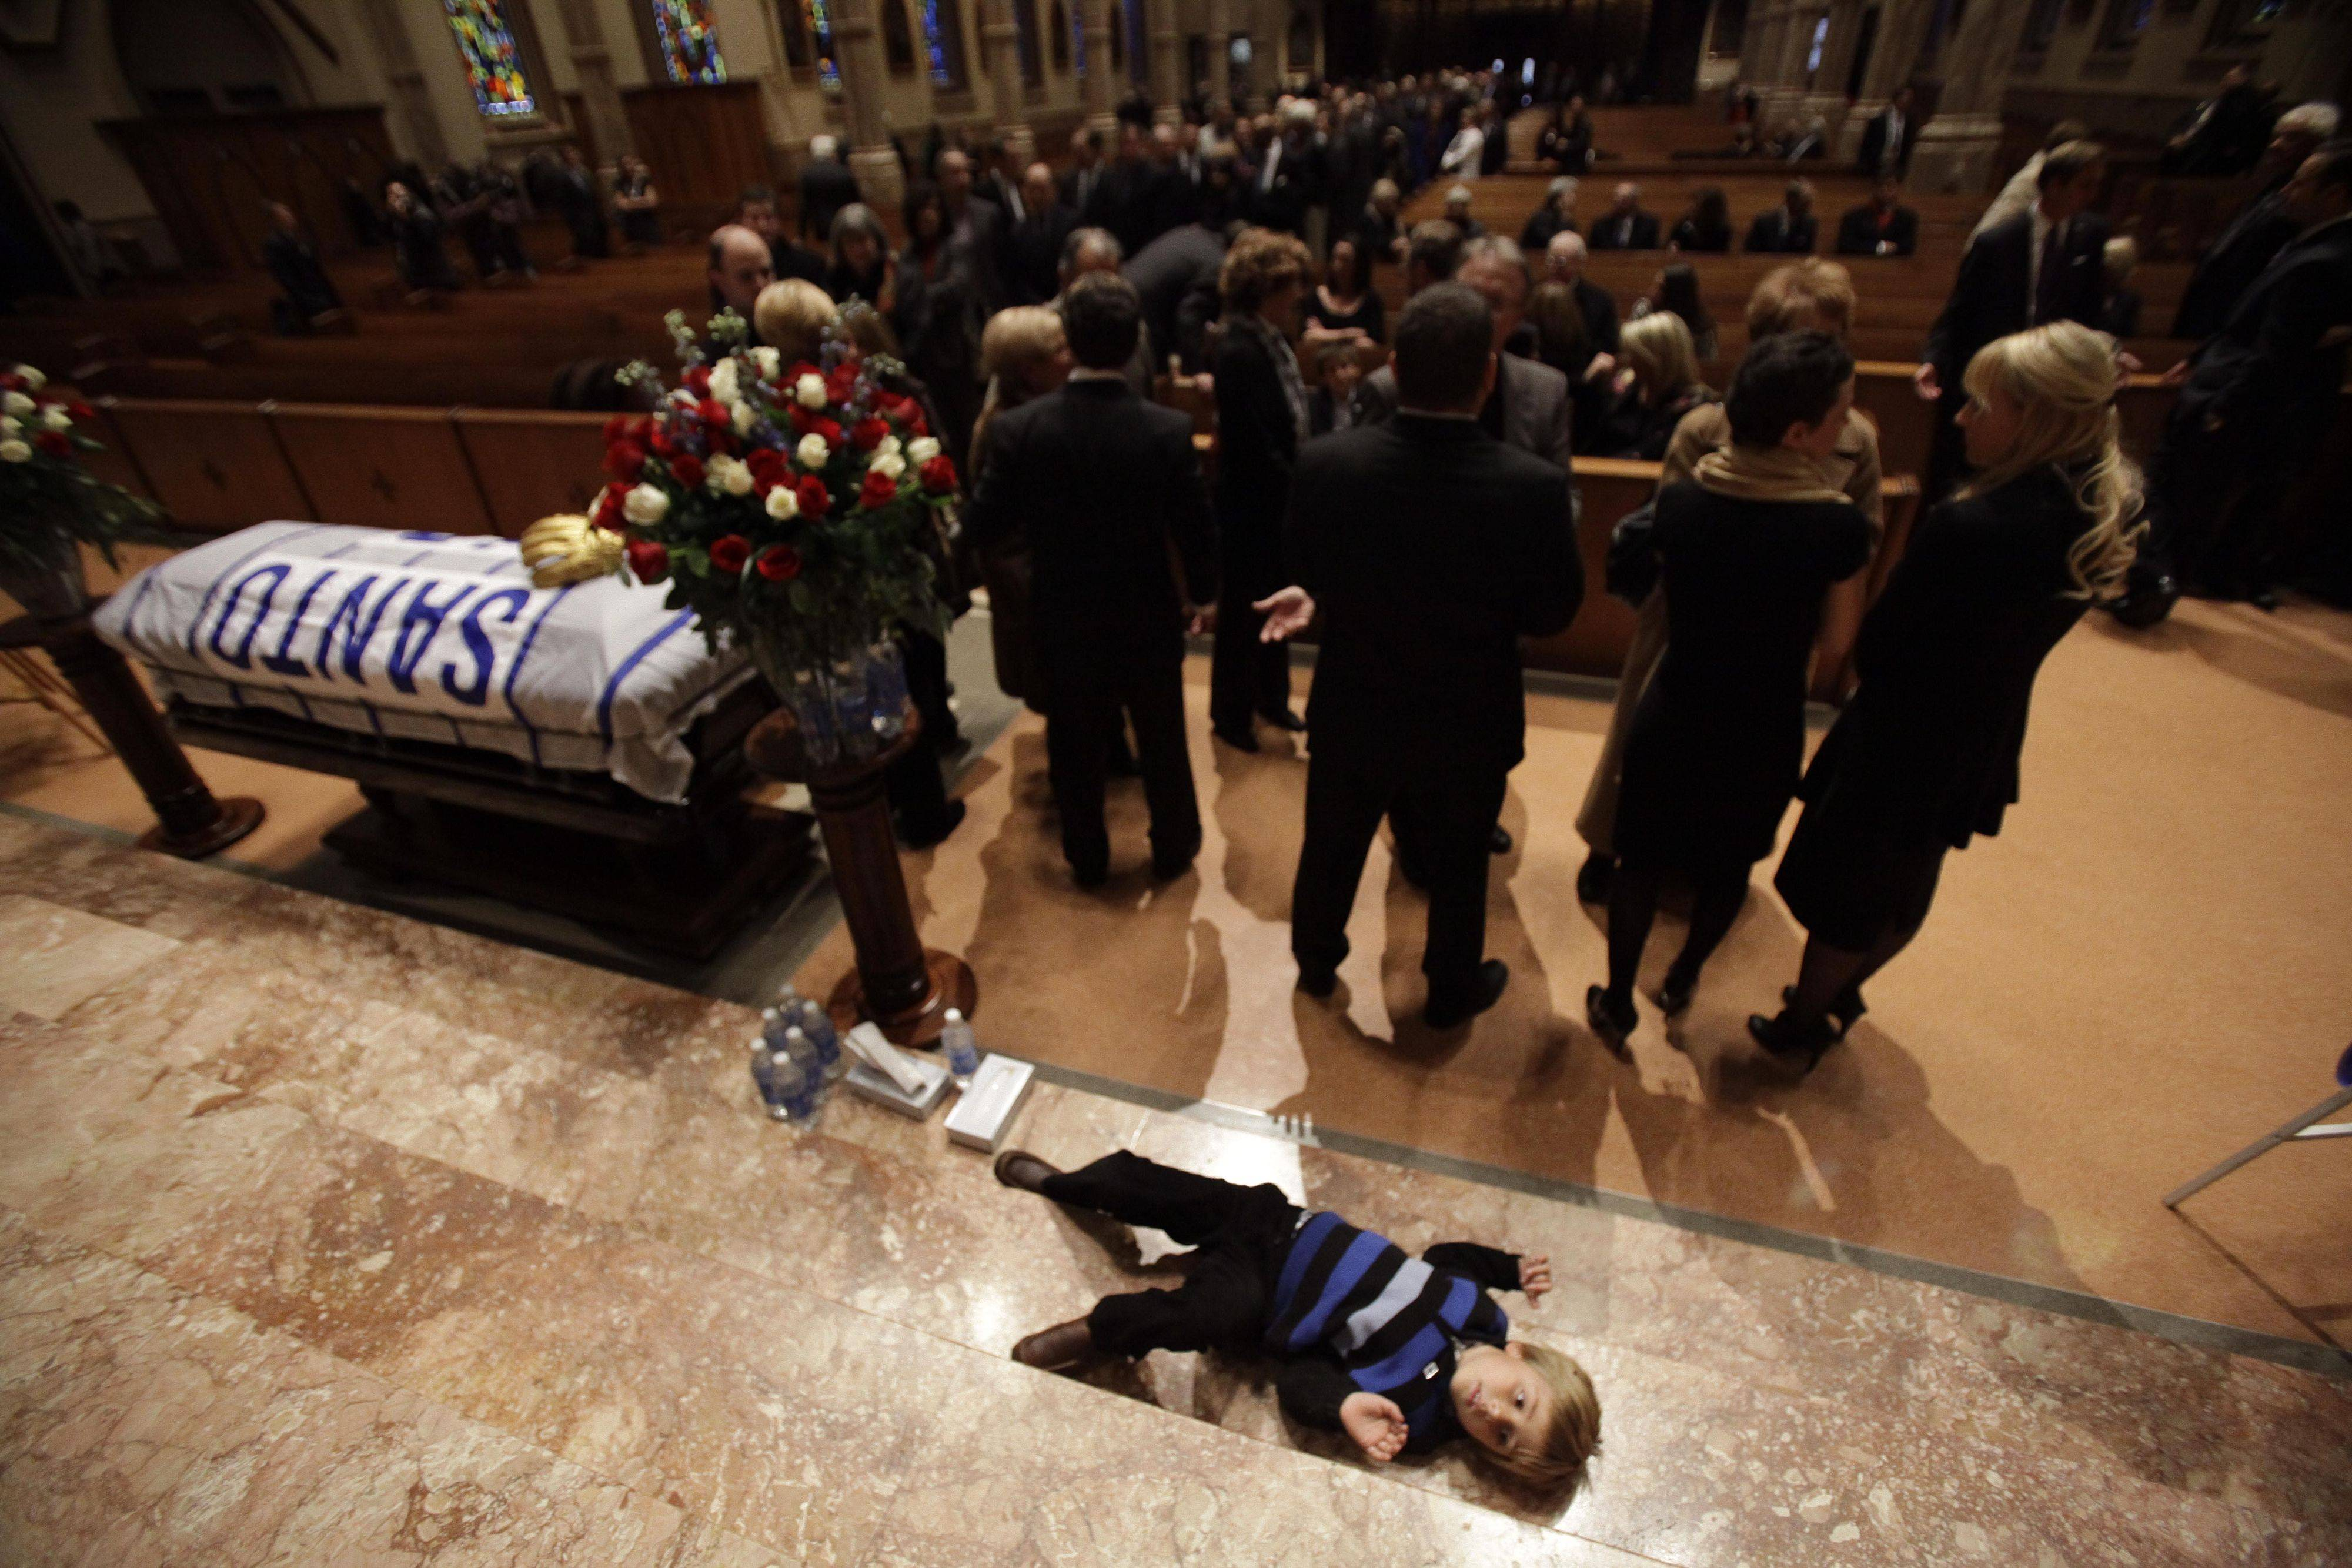 Spencer Brown, grandson of Chicago Cubs great and longtime radio announcer Ron Santo, lays on the altar during visitation at Holy Name Cathedral, Thursday, Dec. 9, 2010, in Chicago. The nine-time all-star died Thursday, Dec. 2 in an Arizona hospital from complication of bladder cancer. He was 70. (AP Photo/Nam Y. Huh, Pool)